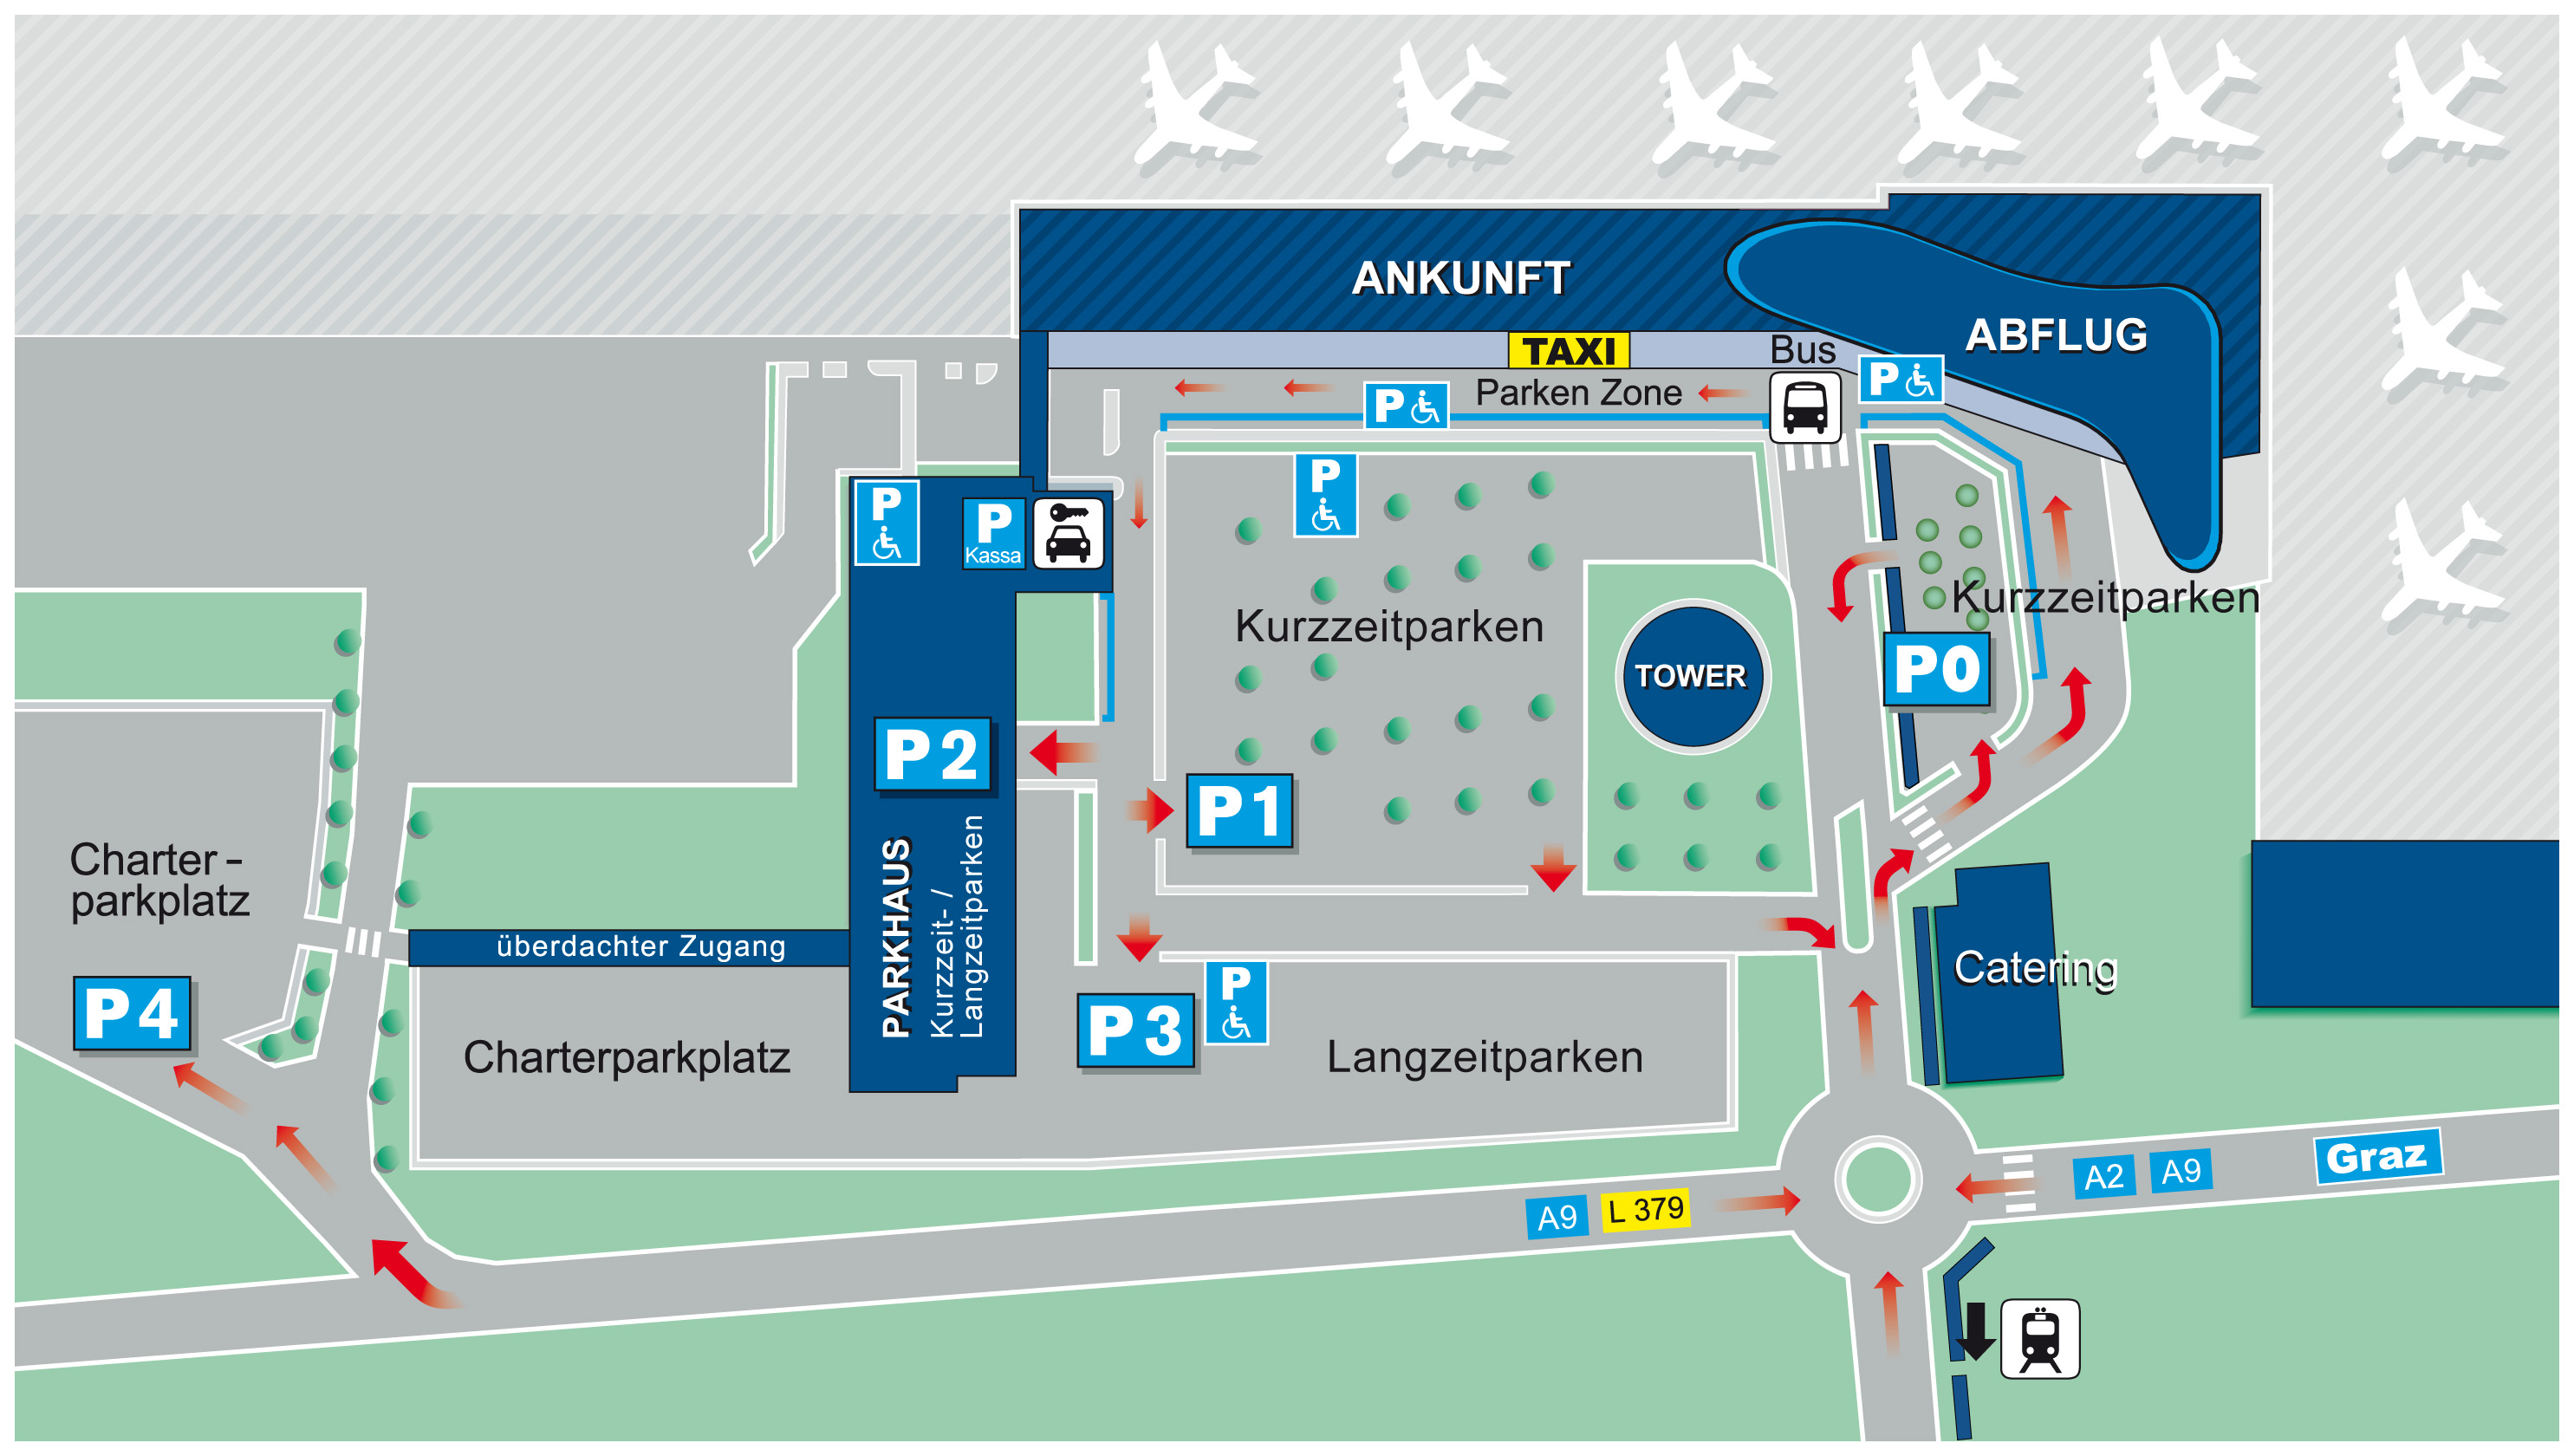 Flughafen Graz Taxi Amp Shuttle Flightinformation